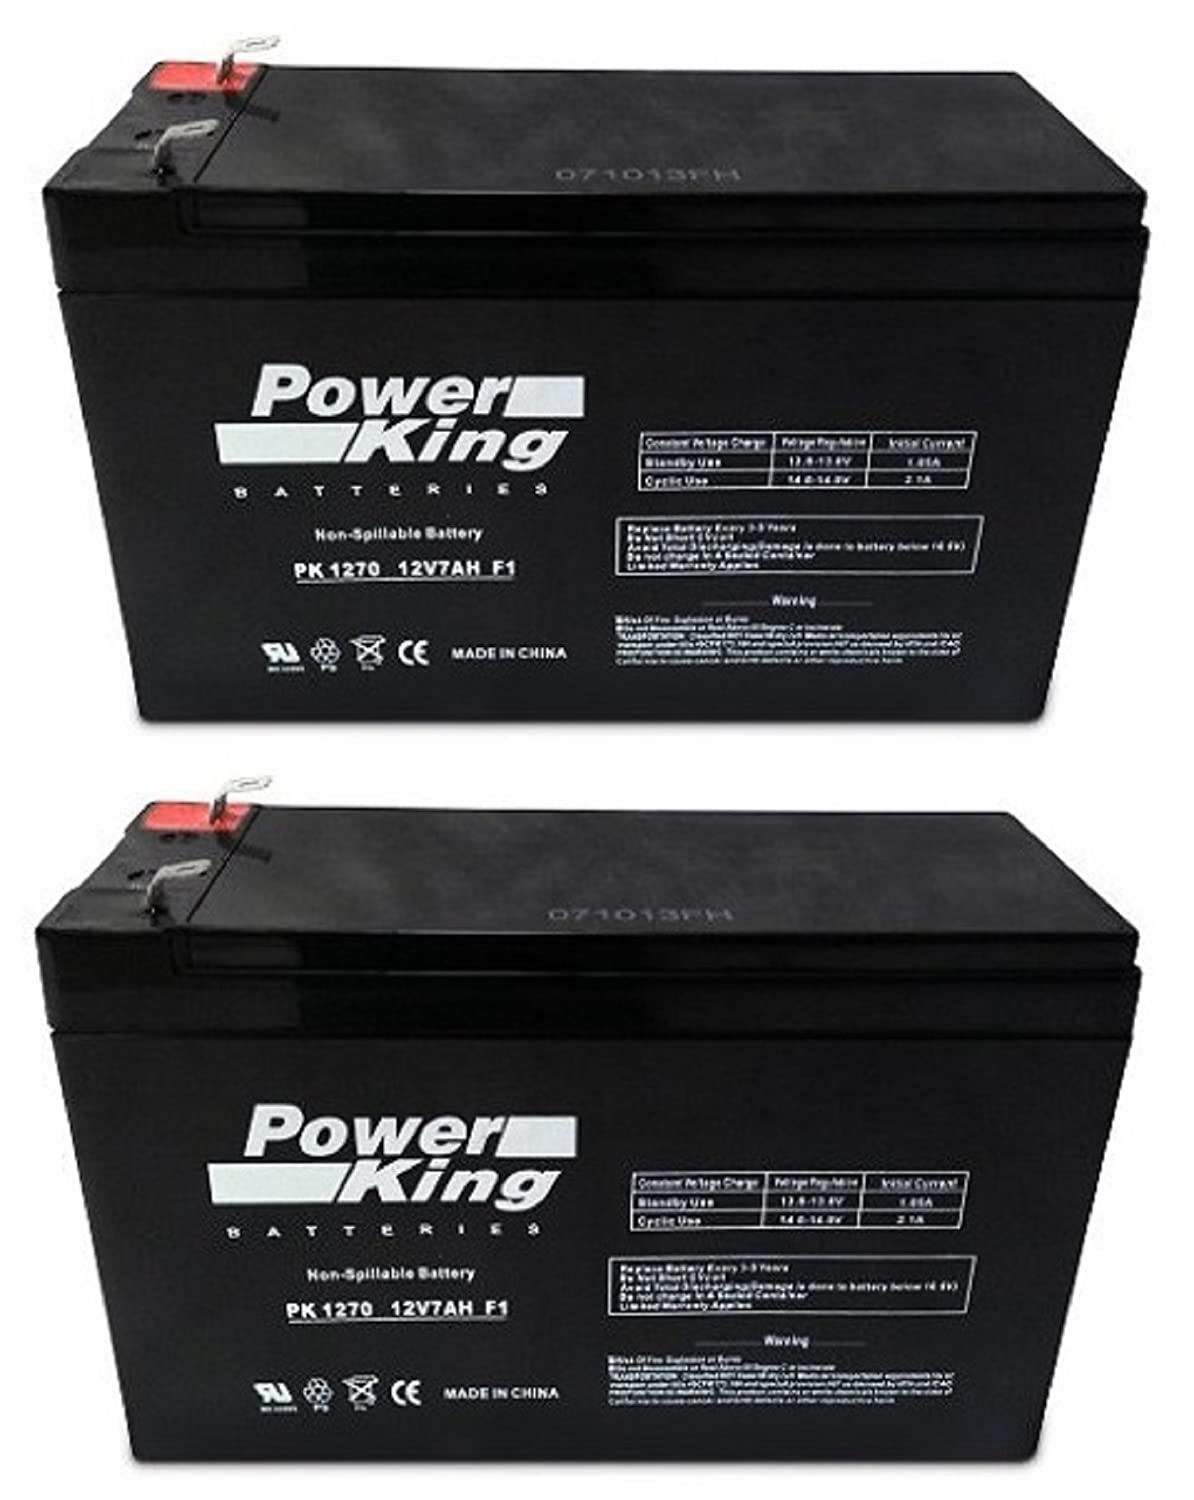 12V 7AH SLA Battery Replaces gp1272 np7-12 bp7-12 npw36-12 ps-1270 ub1280 - 2 Pack Beiter DC Power FM500